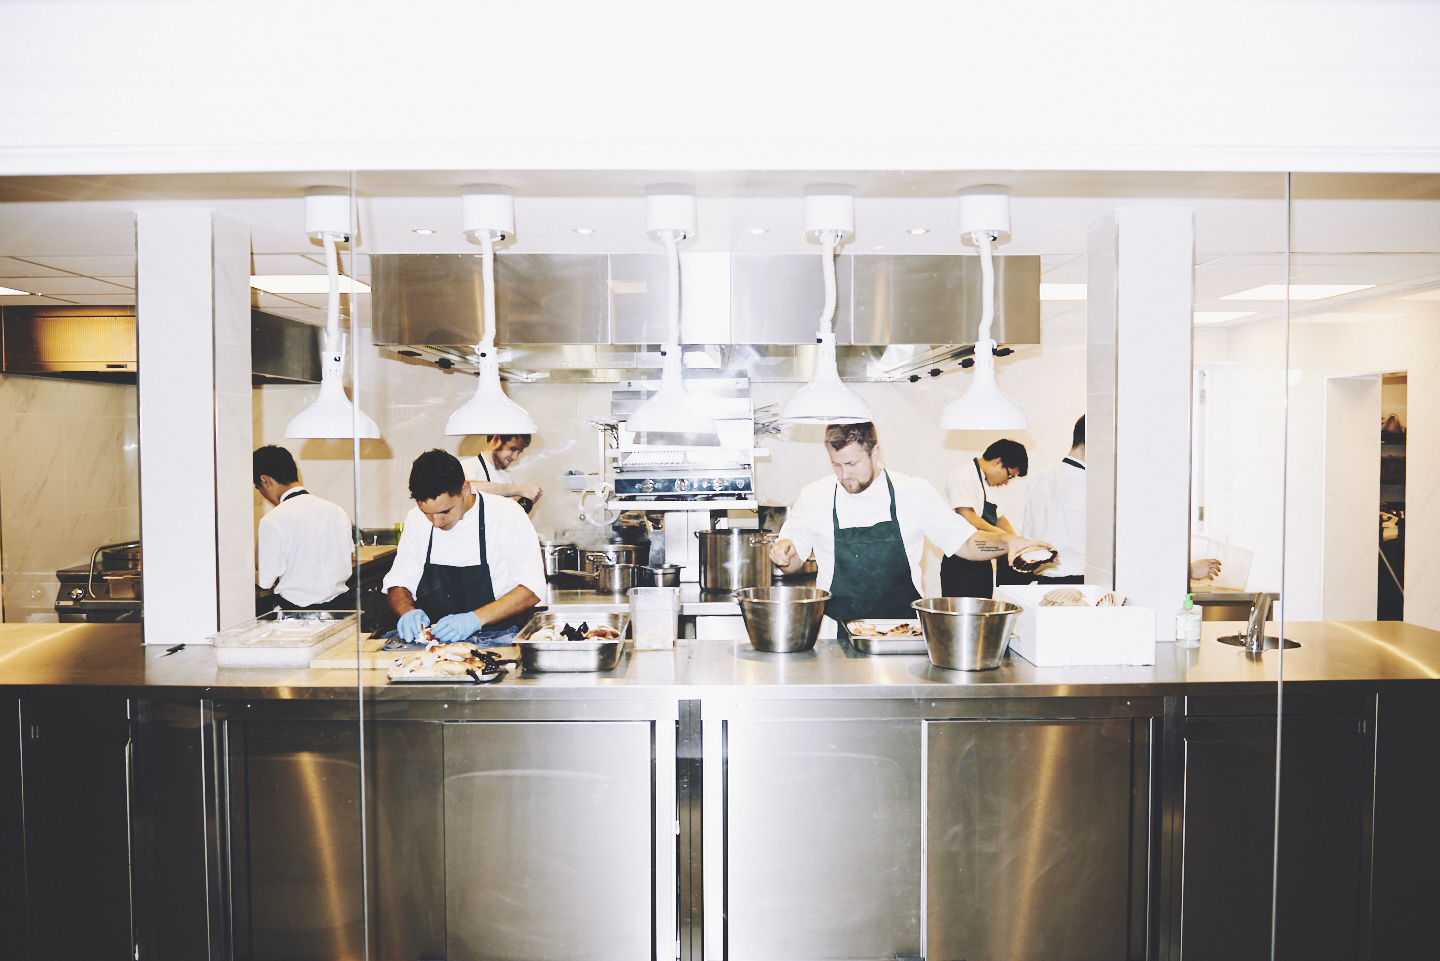 The pass at two Michelin star restaurant Core by Clare Smyth in Notting Hill, London